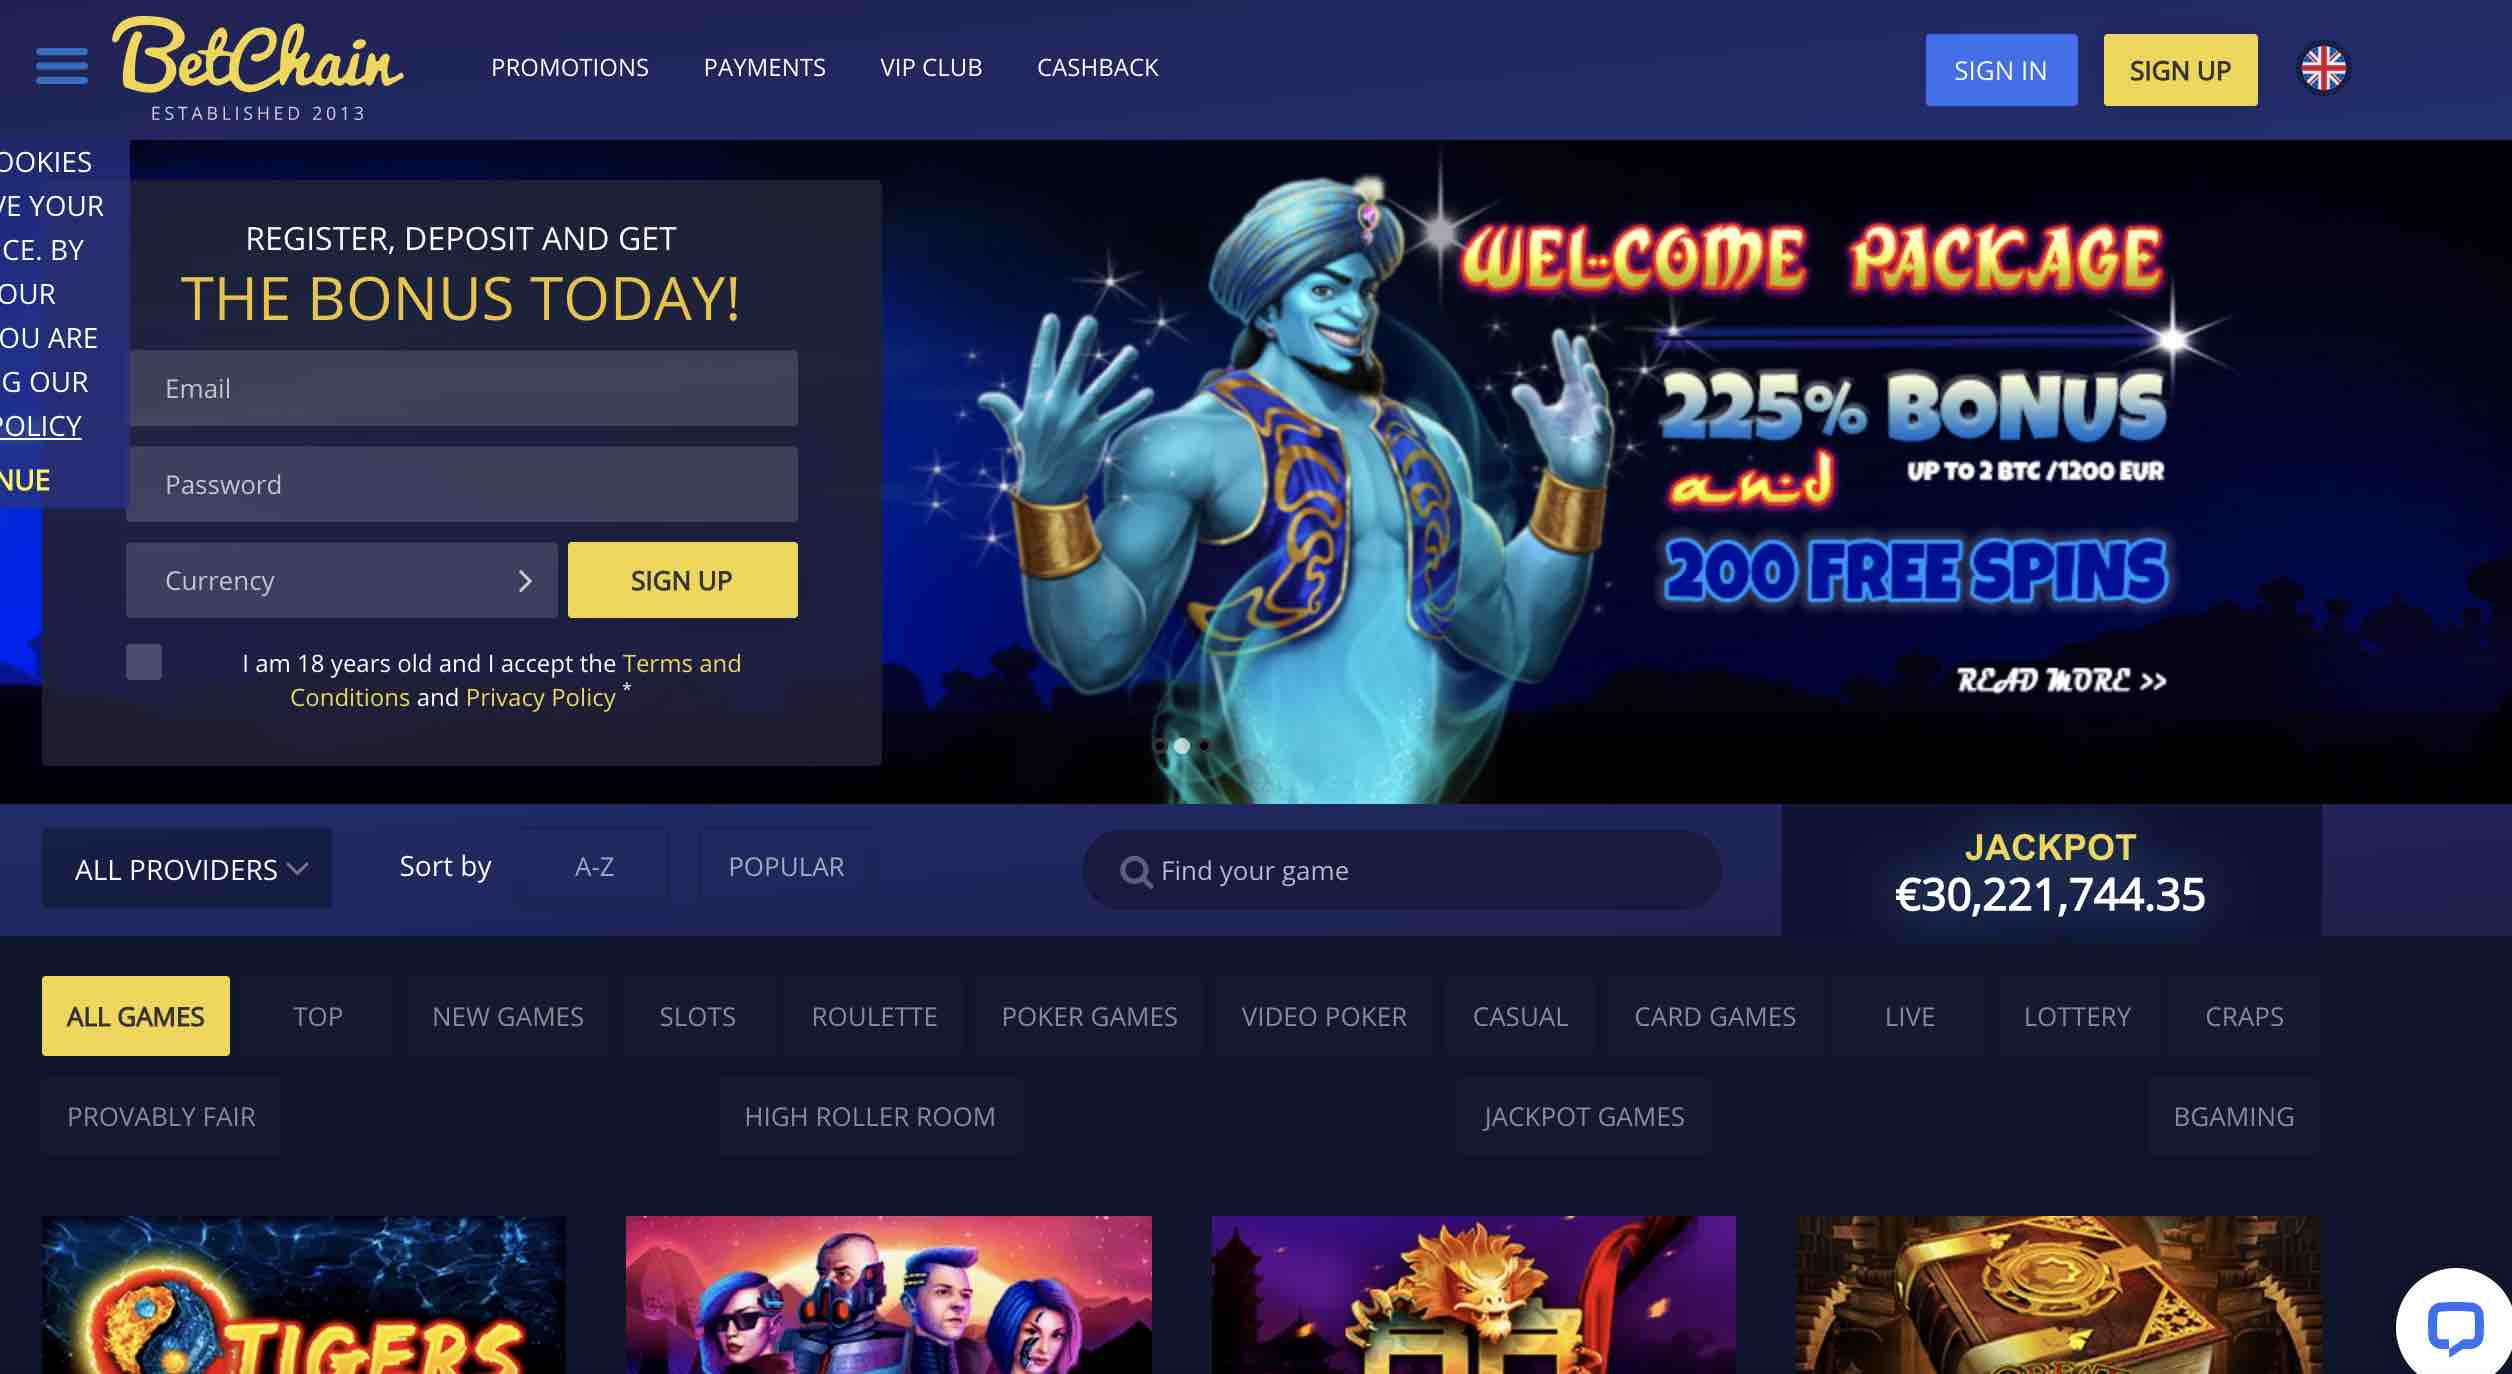 Welcome Offers at BetChain Casino